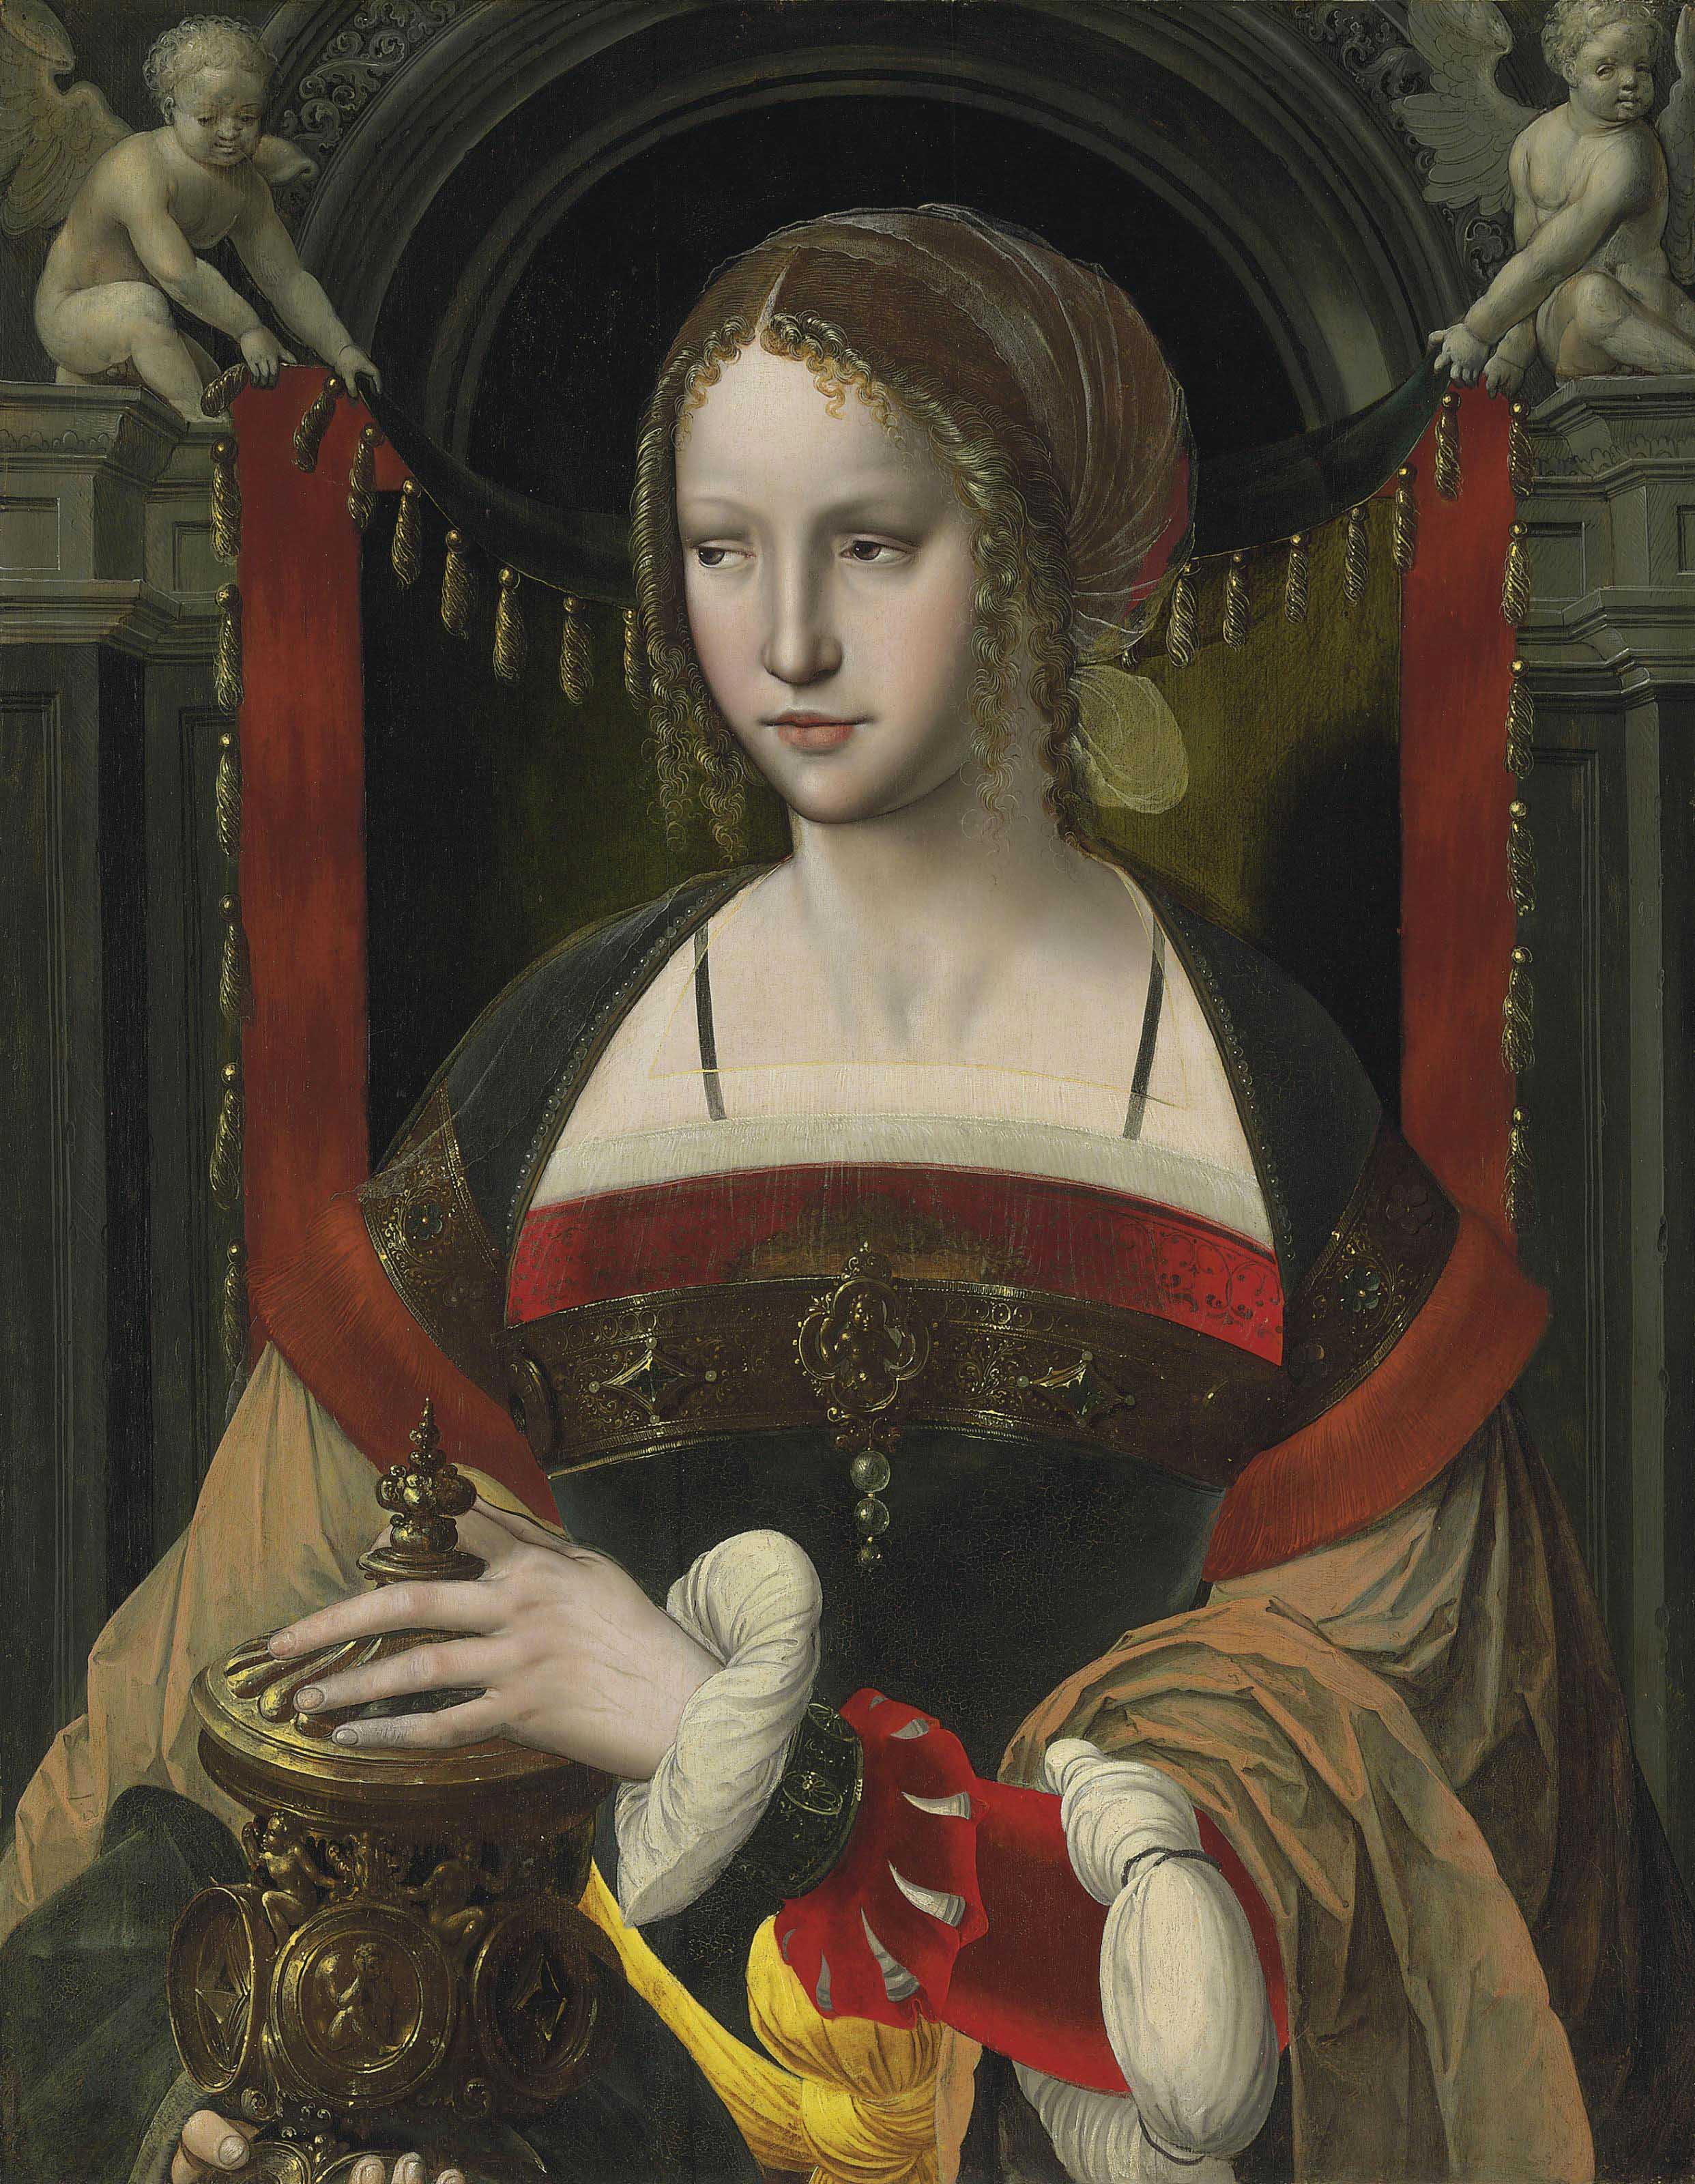 Saint Mary Magdalene before a curtain supported by angels in an architectural niche